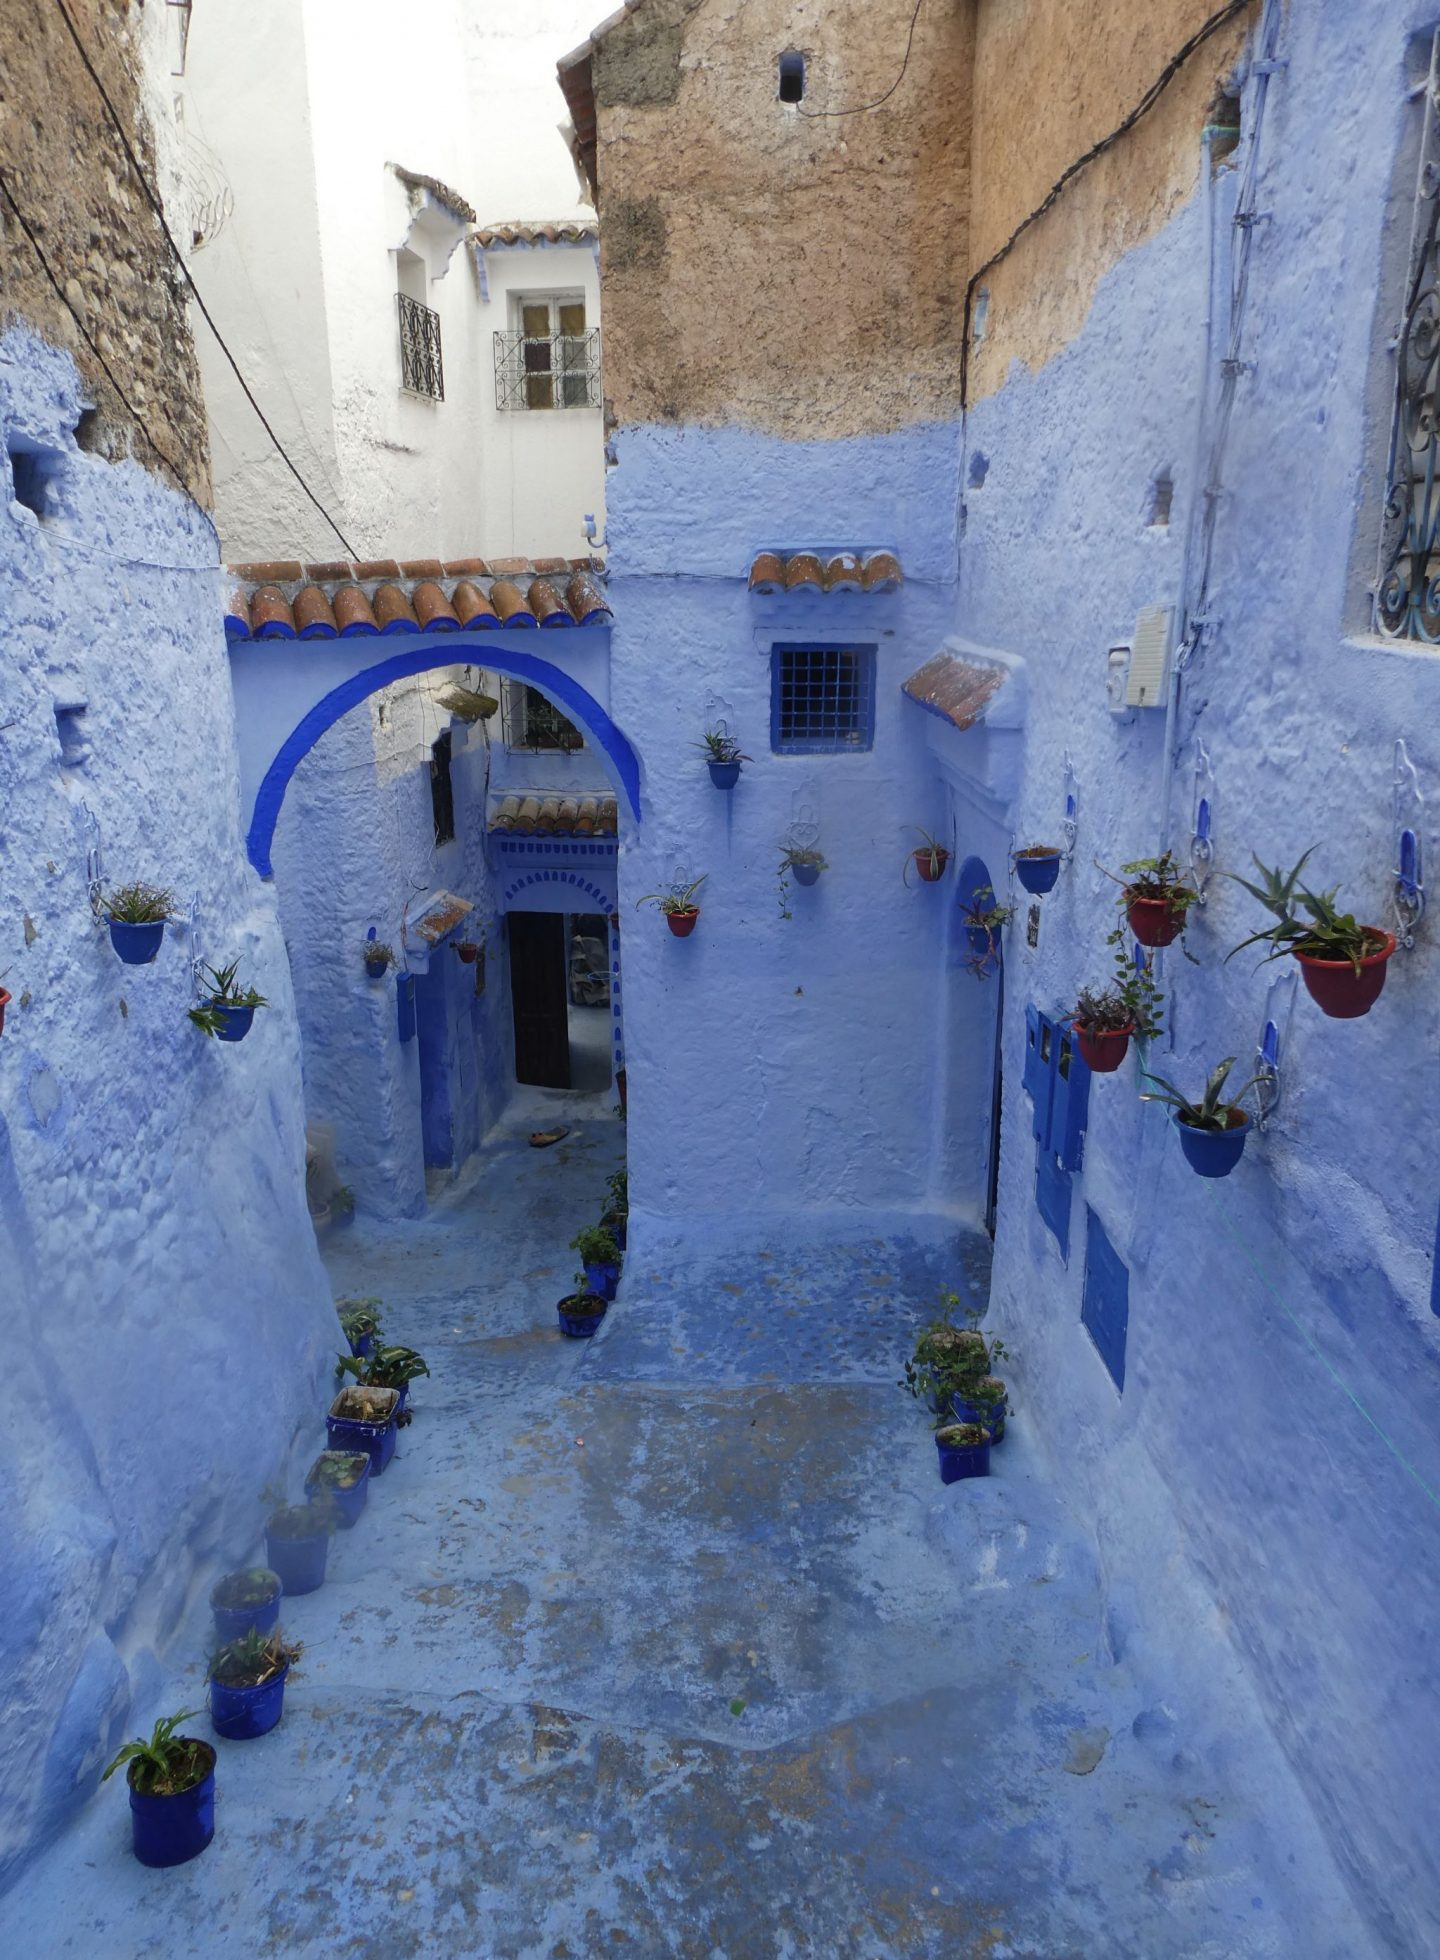 Tetouan and Chefchaouen (12 to 15 October 2018)